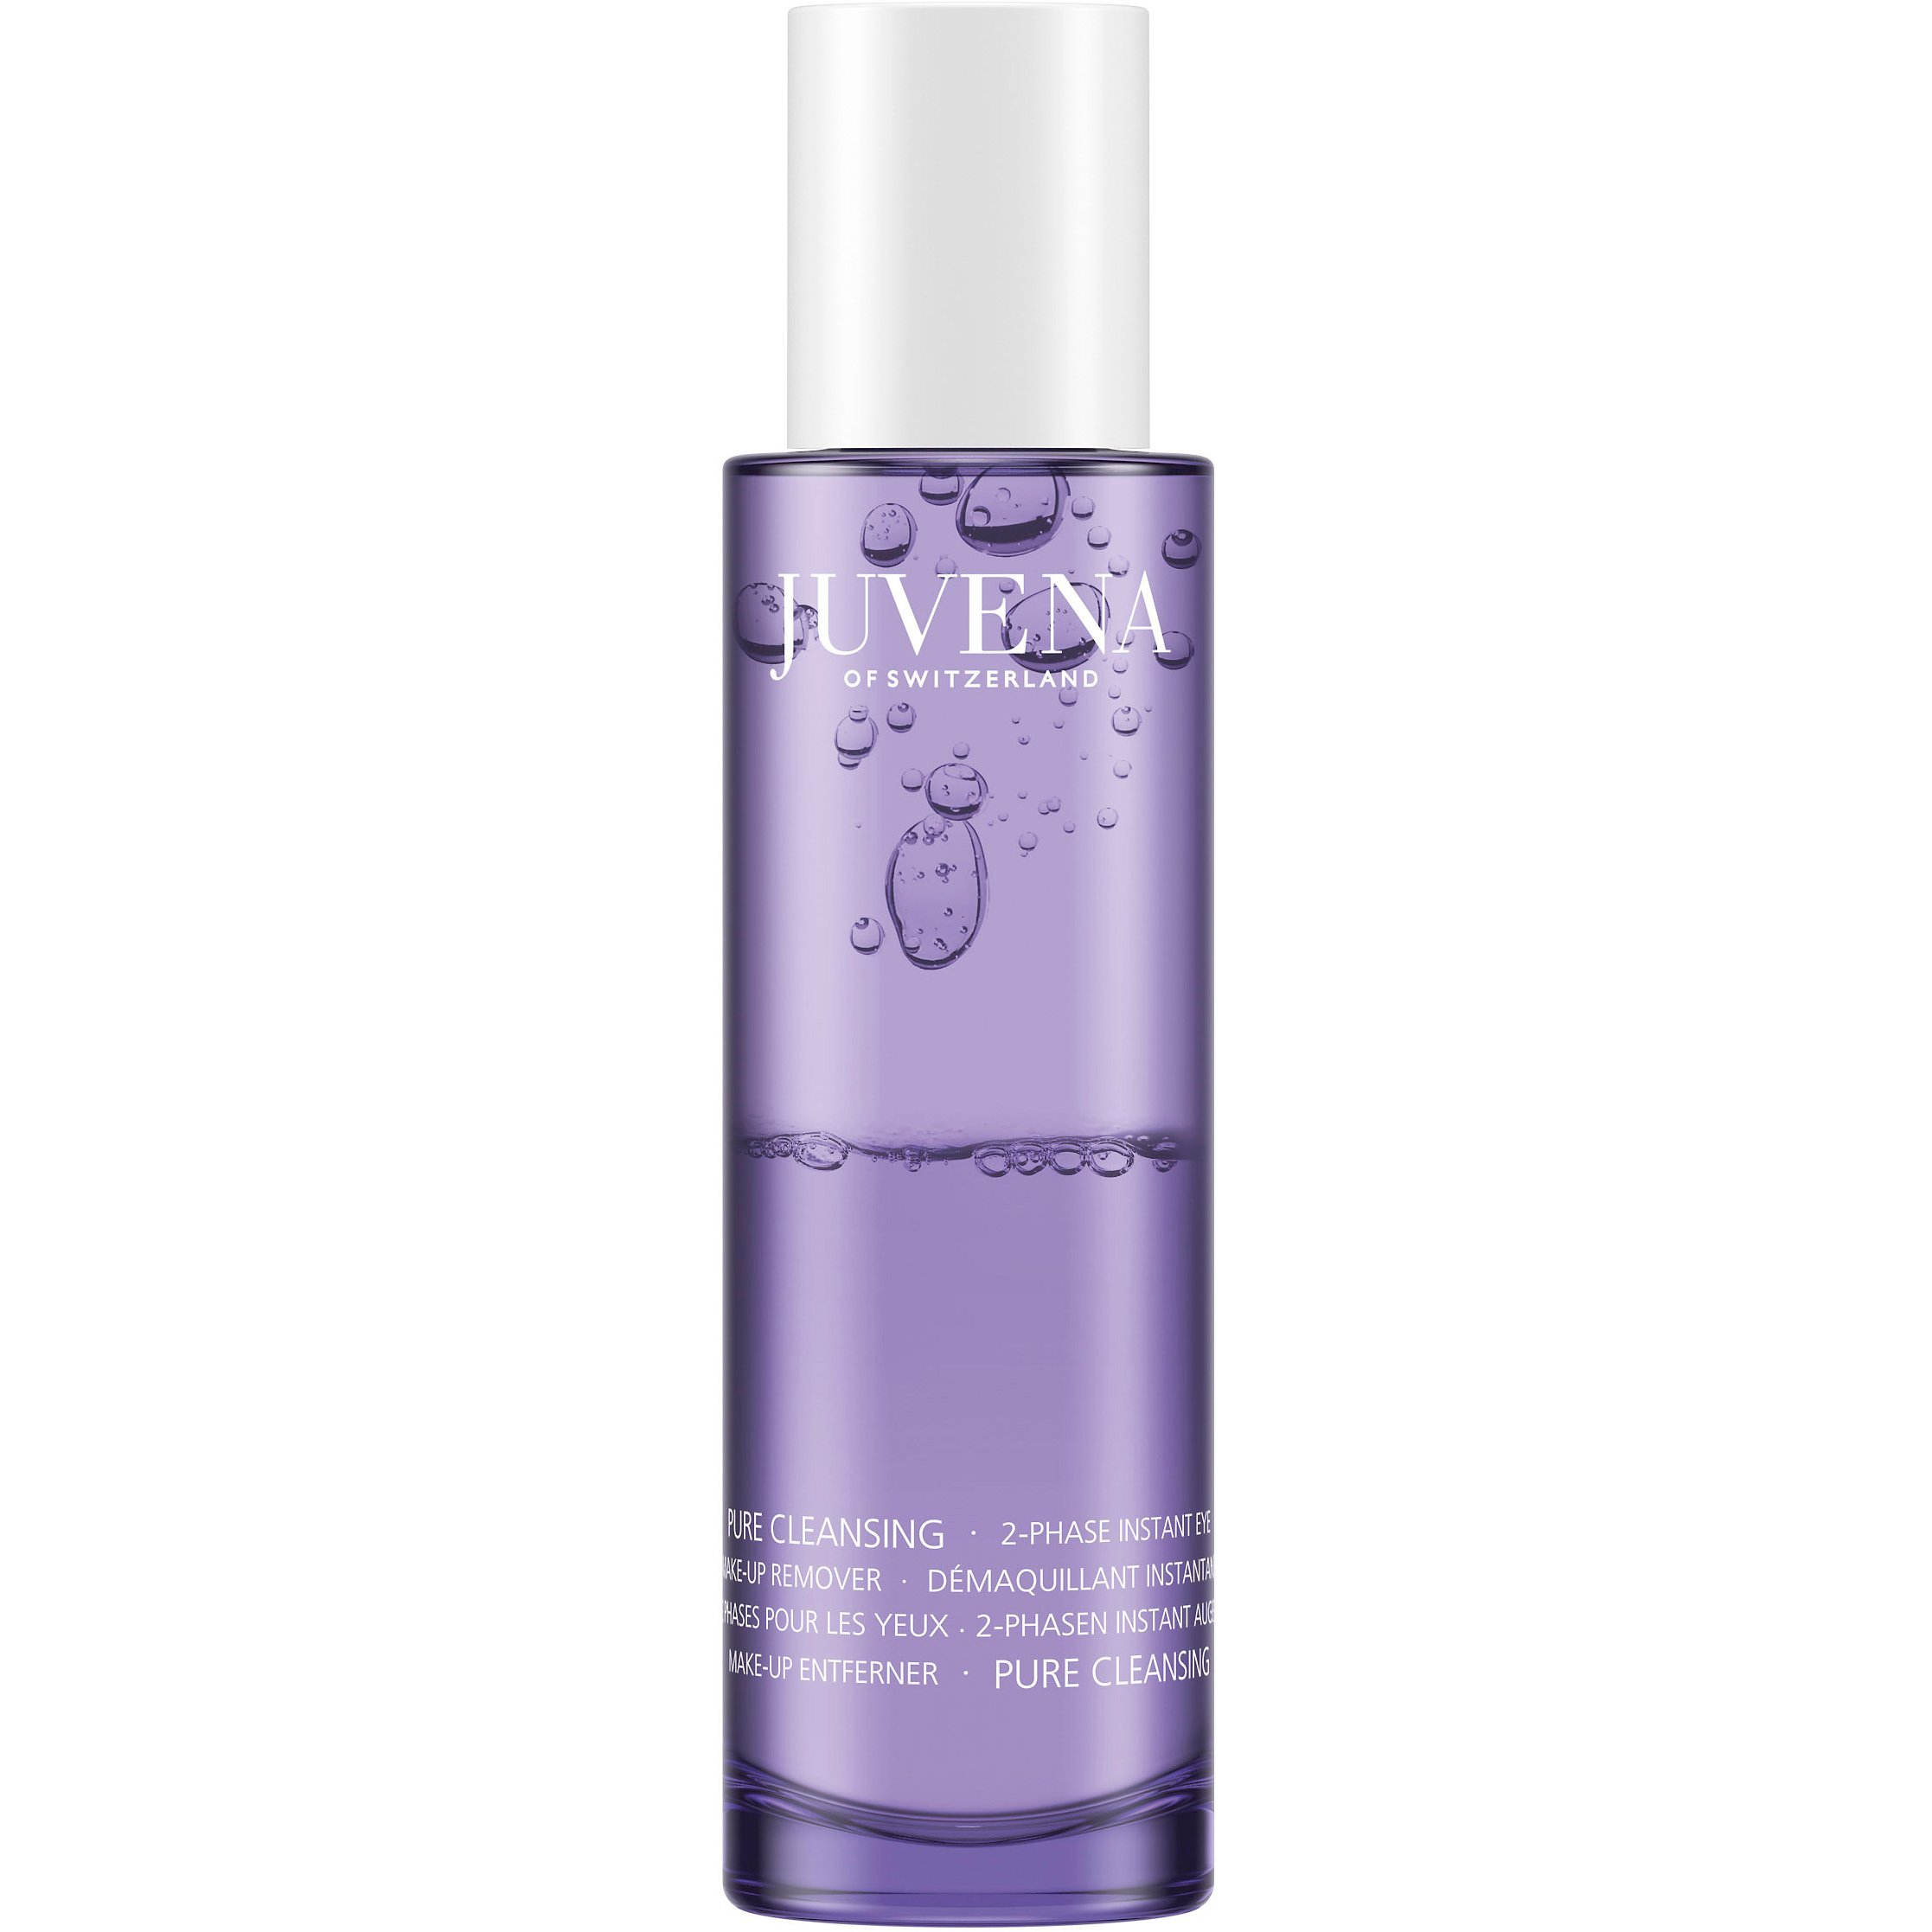 Juvena Pure Cleansing 2-Phase Instant Eye Make-Up Remover Διφασικό Ντεμακιγιάζ Ματιών με Πανθενόλη & Υαλουρονικό Οξύ 100ml